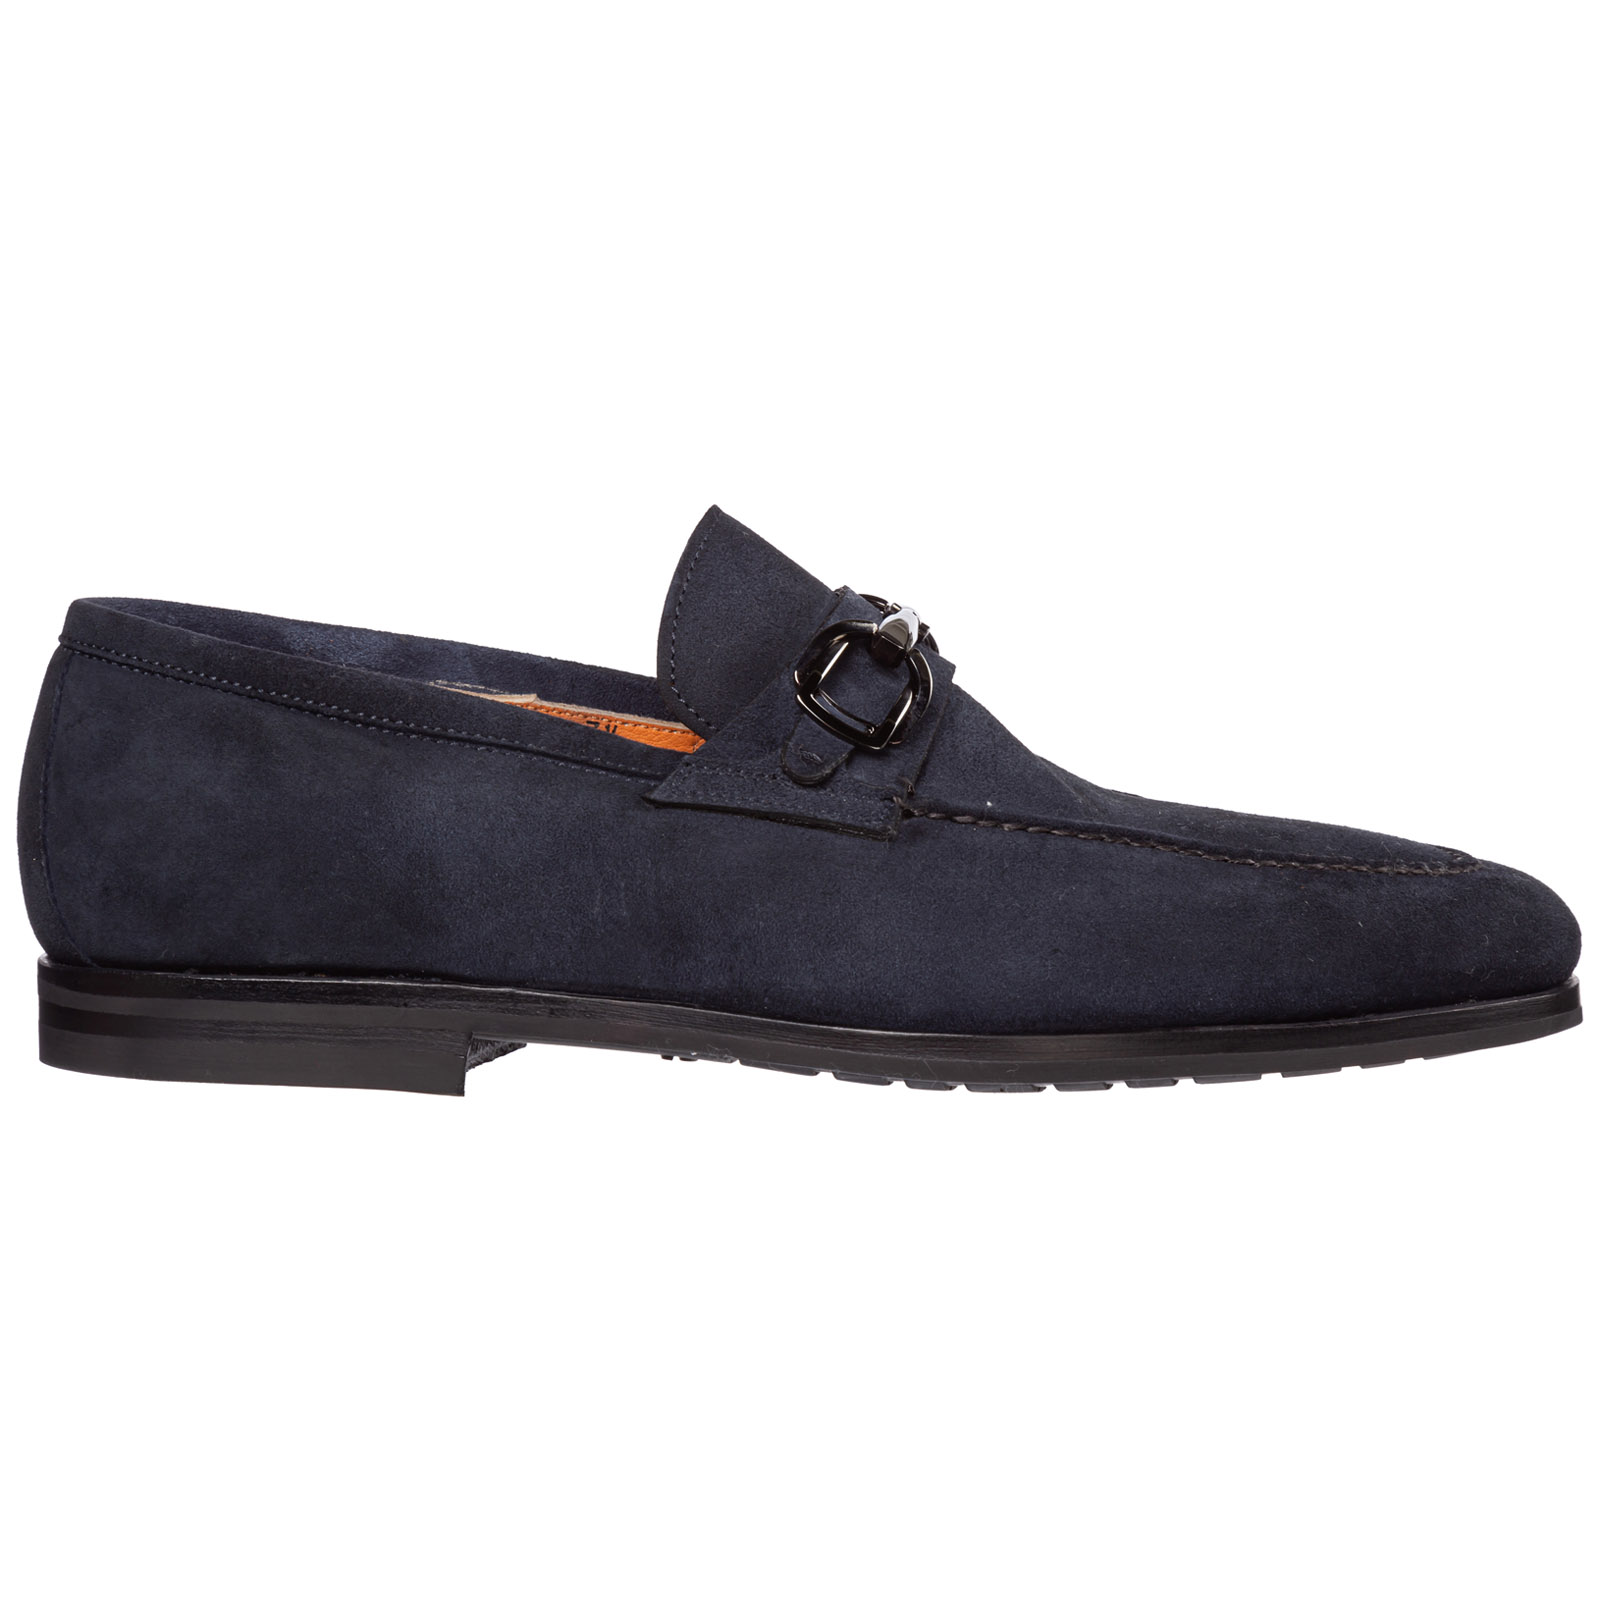 Santoni Loafers MEN'S SUEDE LOAFERS MOCCASINS